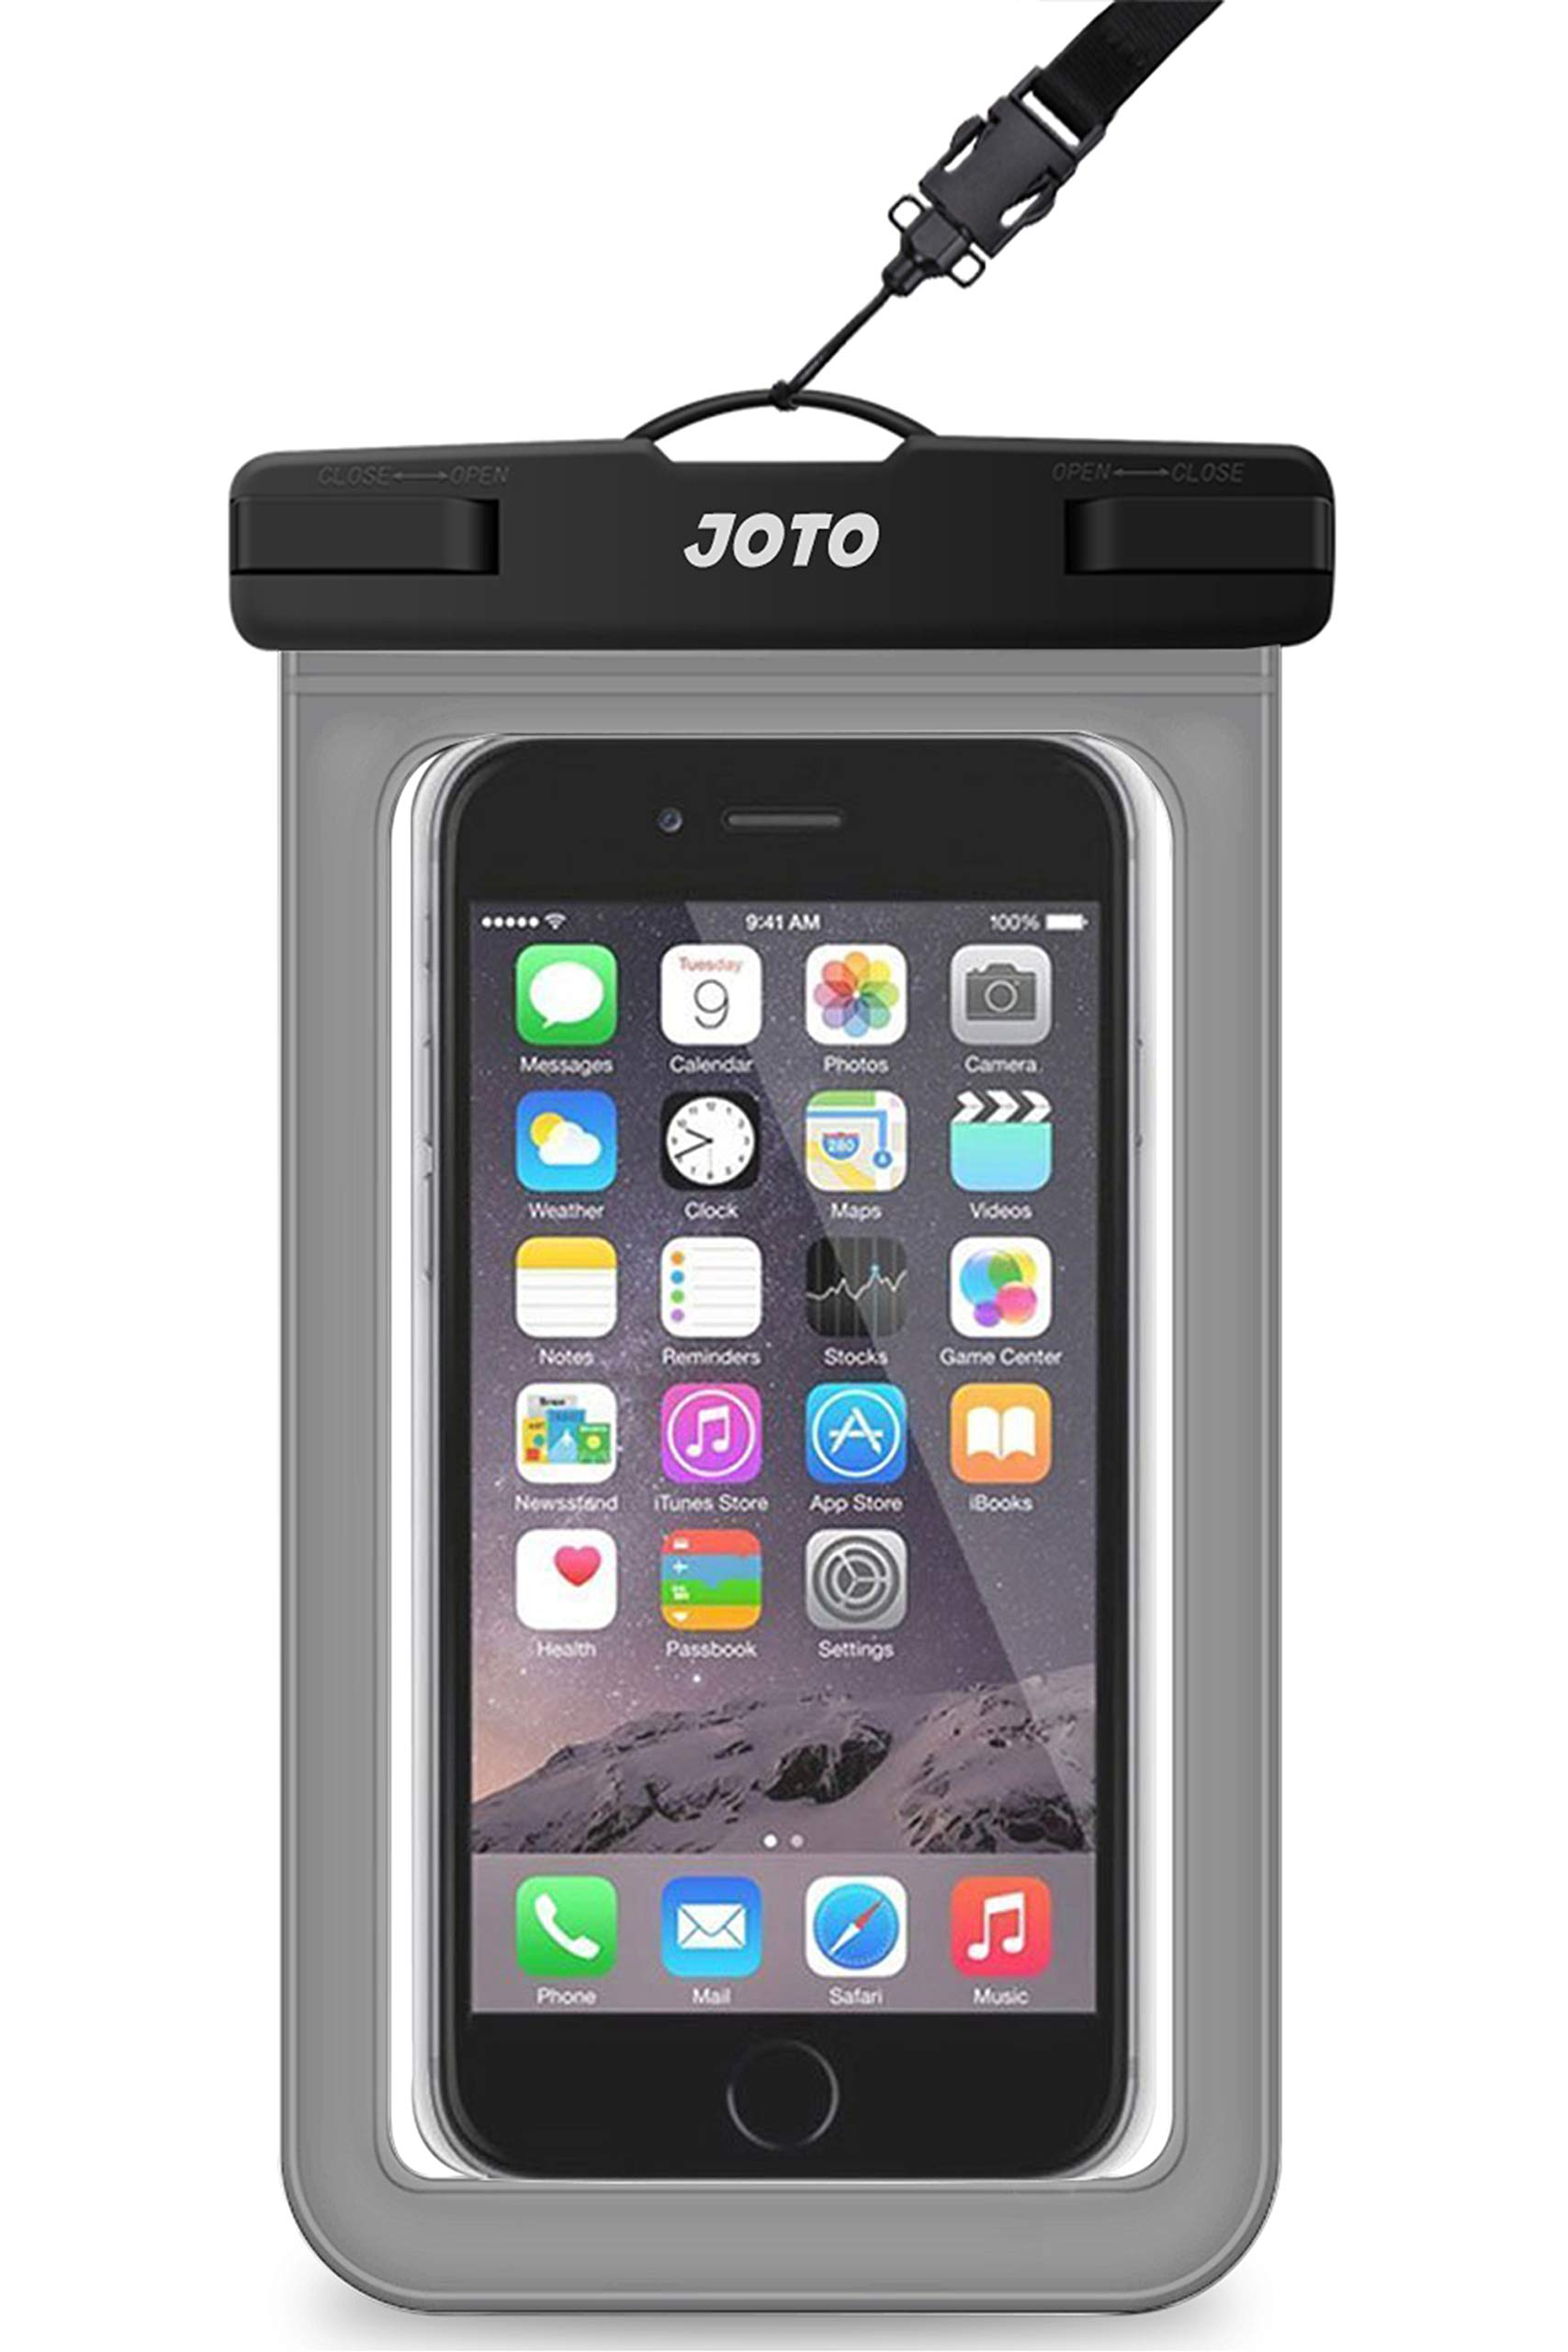 """JOTO Universal Waterproof Pouch Cellphone Dry Bag Case for iPhone 11 Pro Max Xs Max XR X 8 7 6S Plus, Galaxy S20 Ultra S20+ S10 Plus S10e S9 Plus S8/Note 10+ 10 9 8, Pixel 4 XL 3a up to 6.9"""" –Grey"""